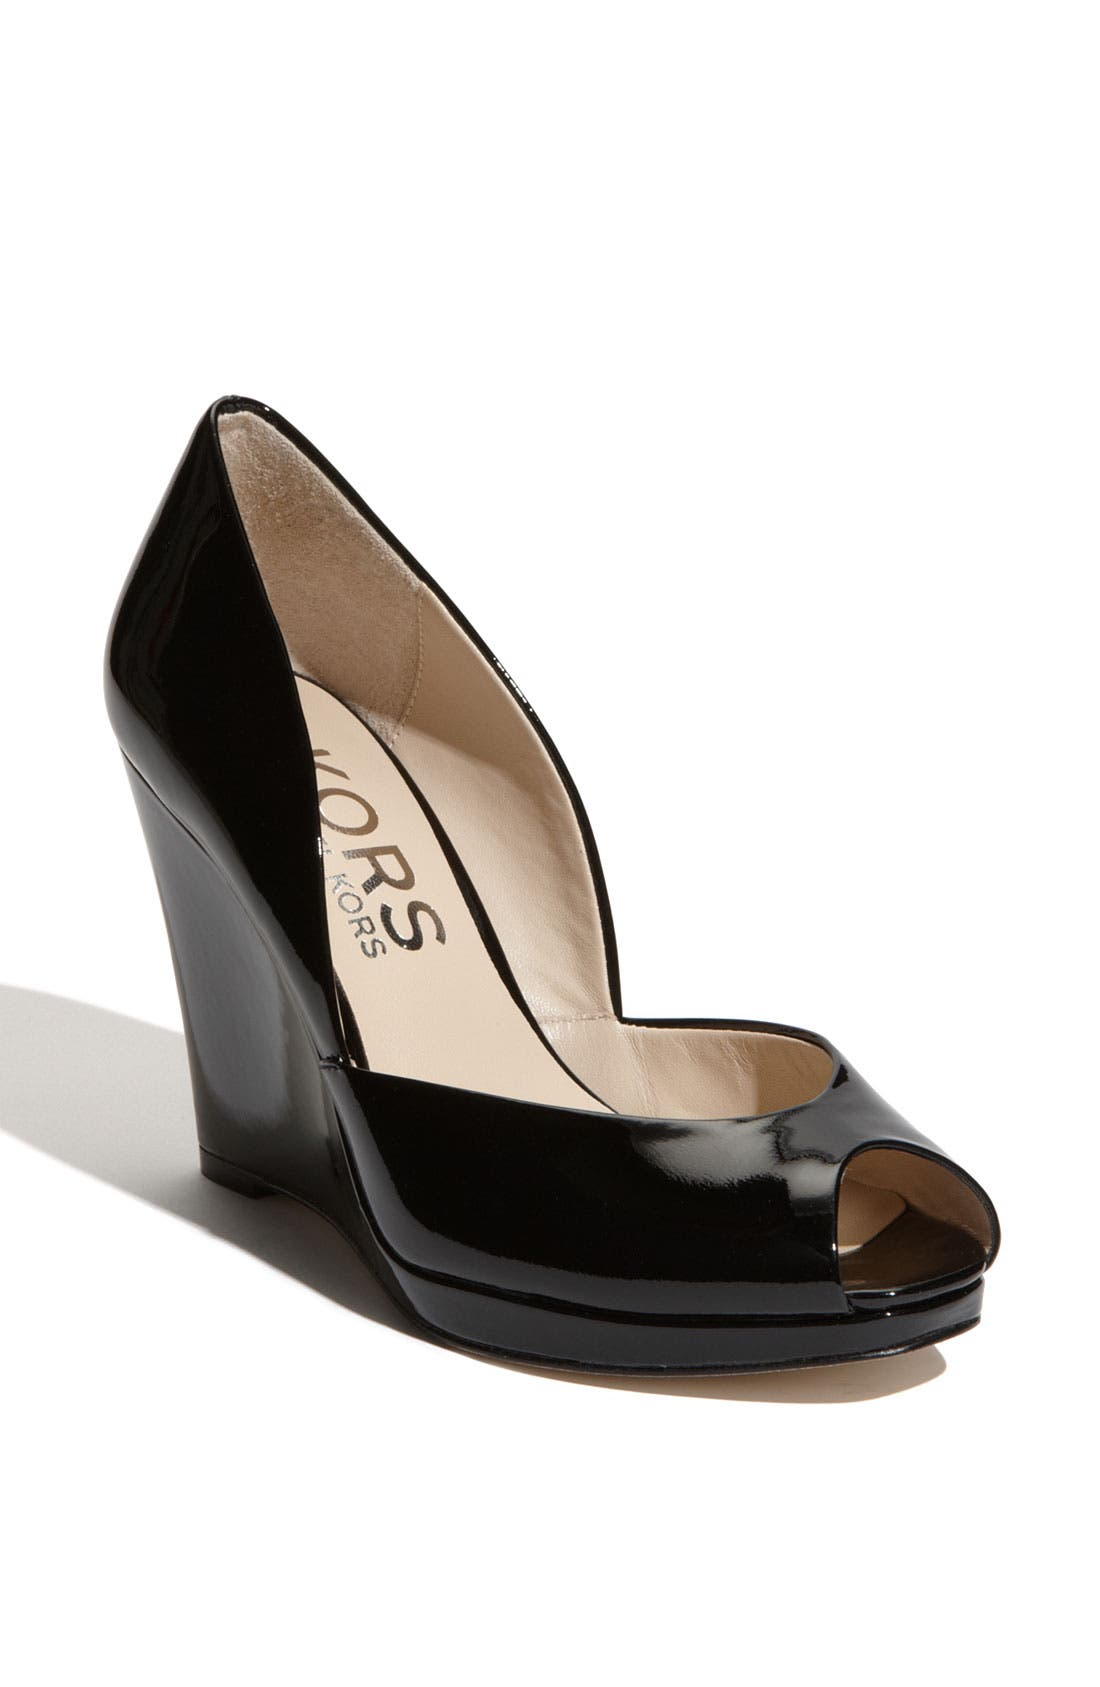 Alternate Image 1 Selected - KORS Michael Kors 'Vail' Pump